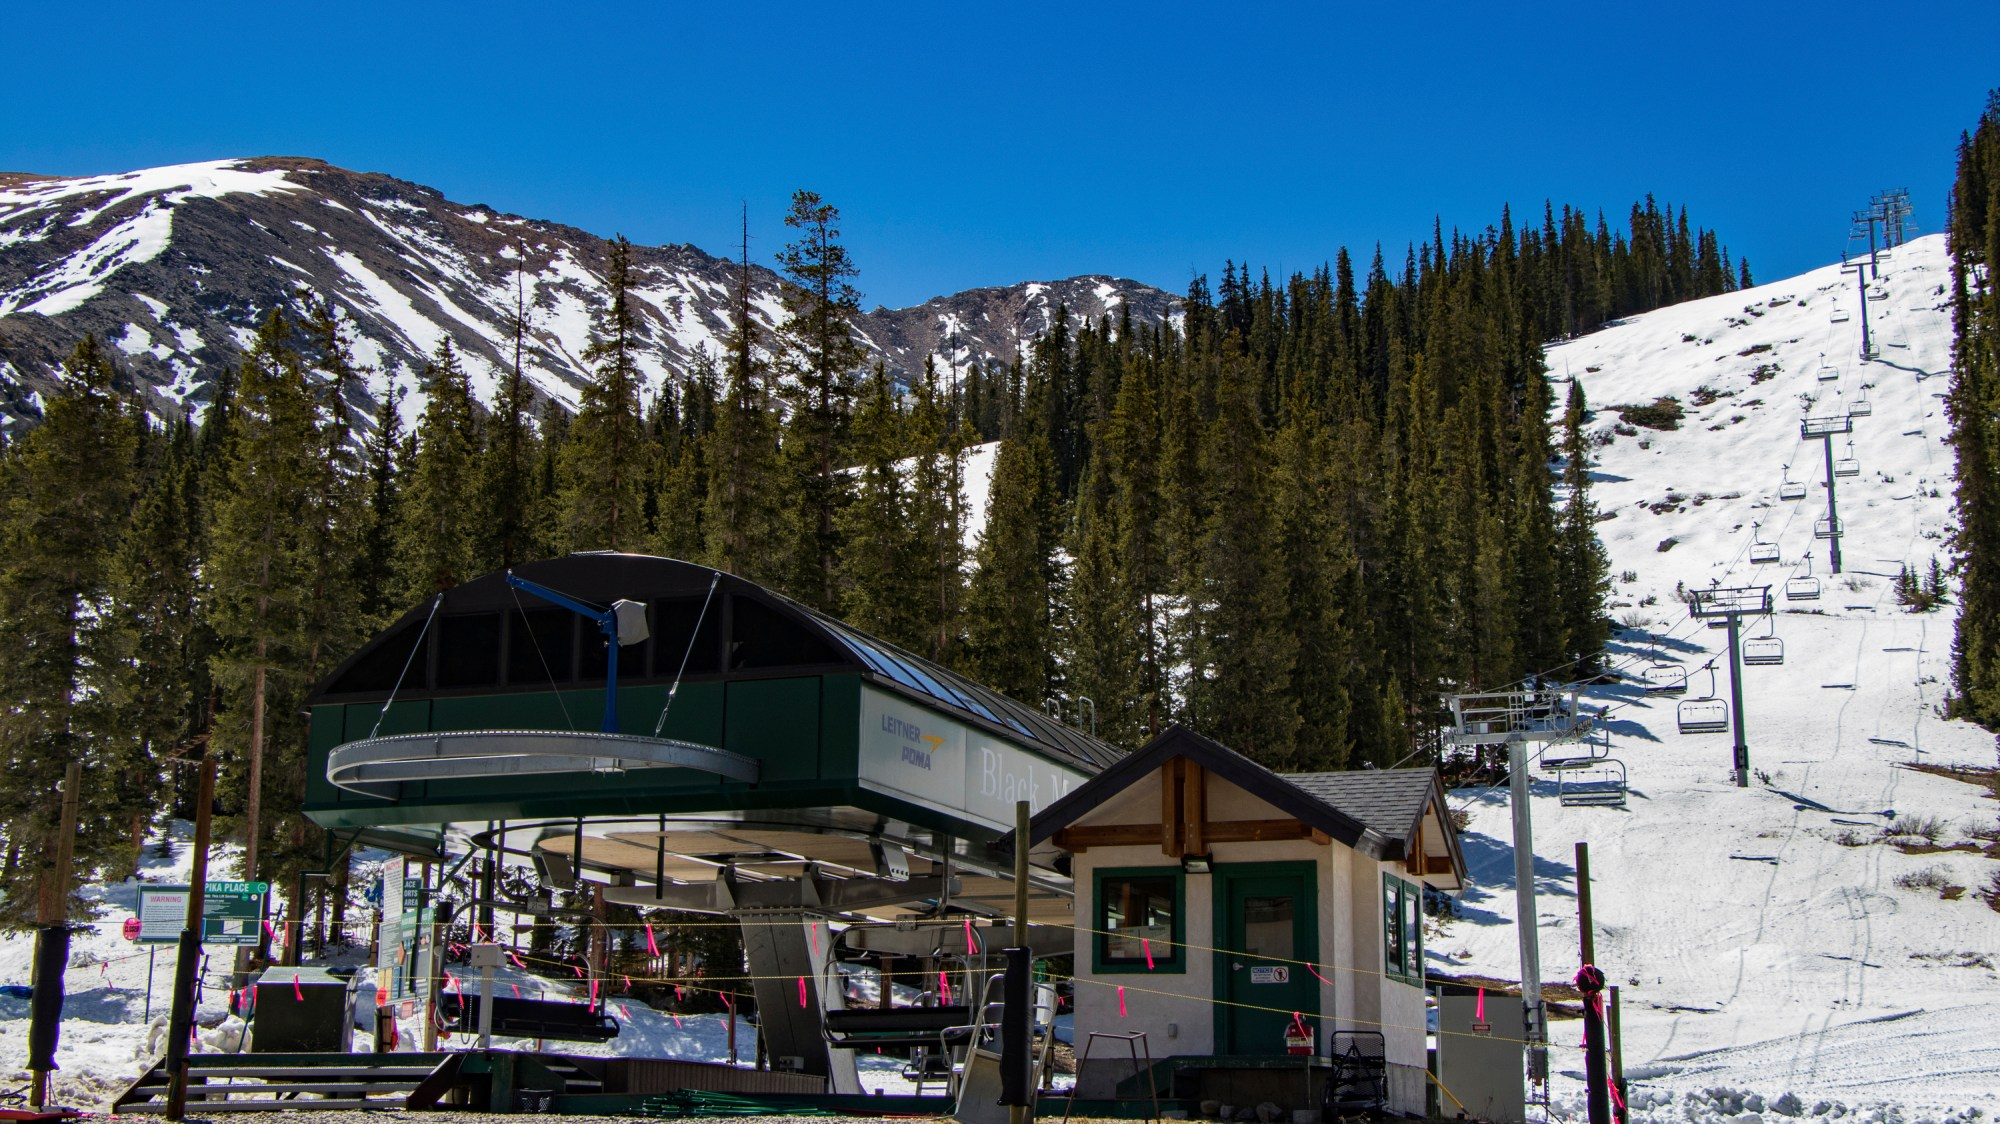 This Friday, May 22, 2020, photo provided by Arapahoe Basin shows Arapahoe Basin Ski Area in Summit County, Colo. The Colorado Department of Public Health and Environment will allow the partial reopening of the ski resort, effective Wednesday, May 27. This follows approval of Summit County's request for a variance from the state public health order by the Colorado Department of Public Health and Environment. Reservations are required. (Ian Zinner/Arapahoe Basin Ski Area via AP)